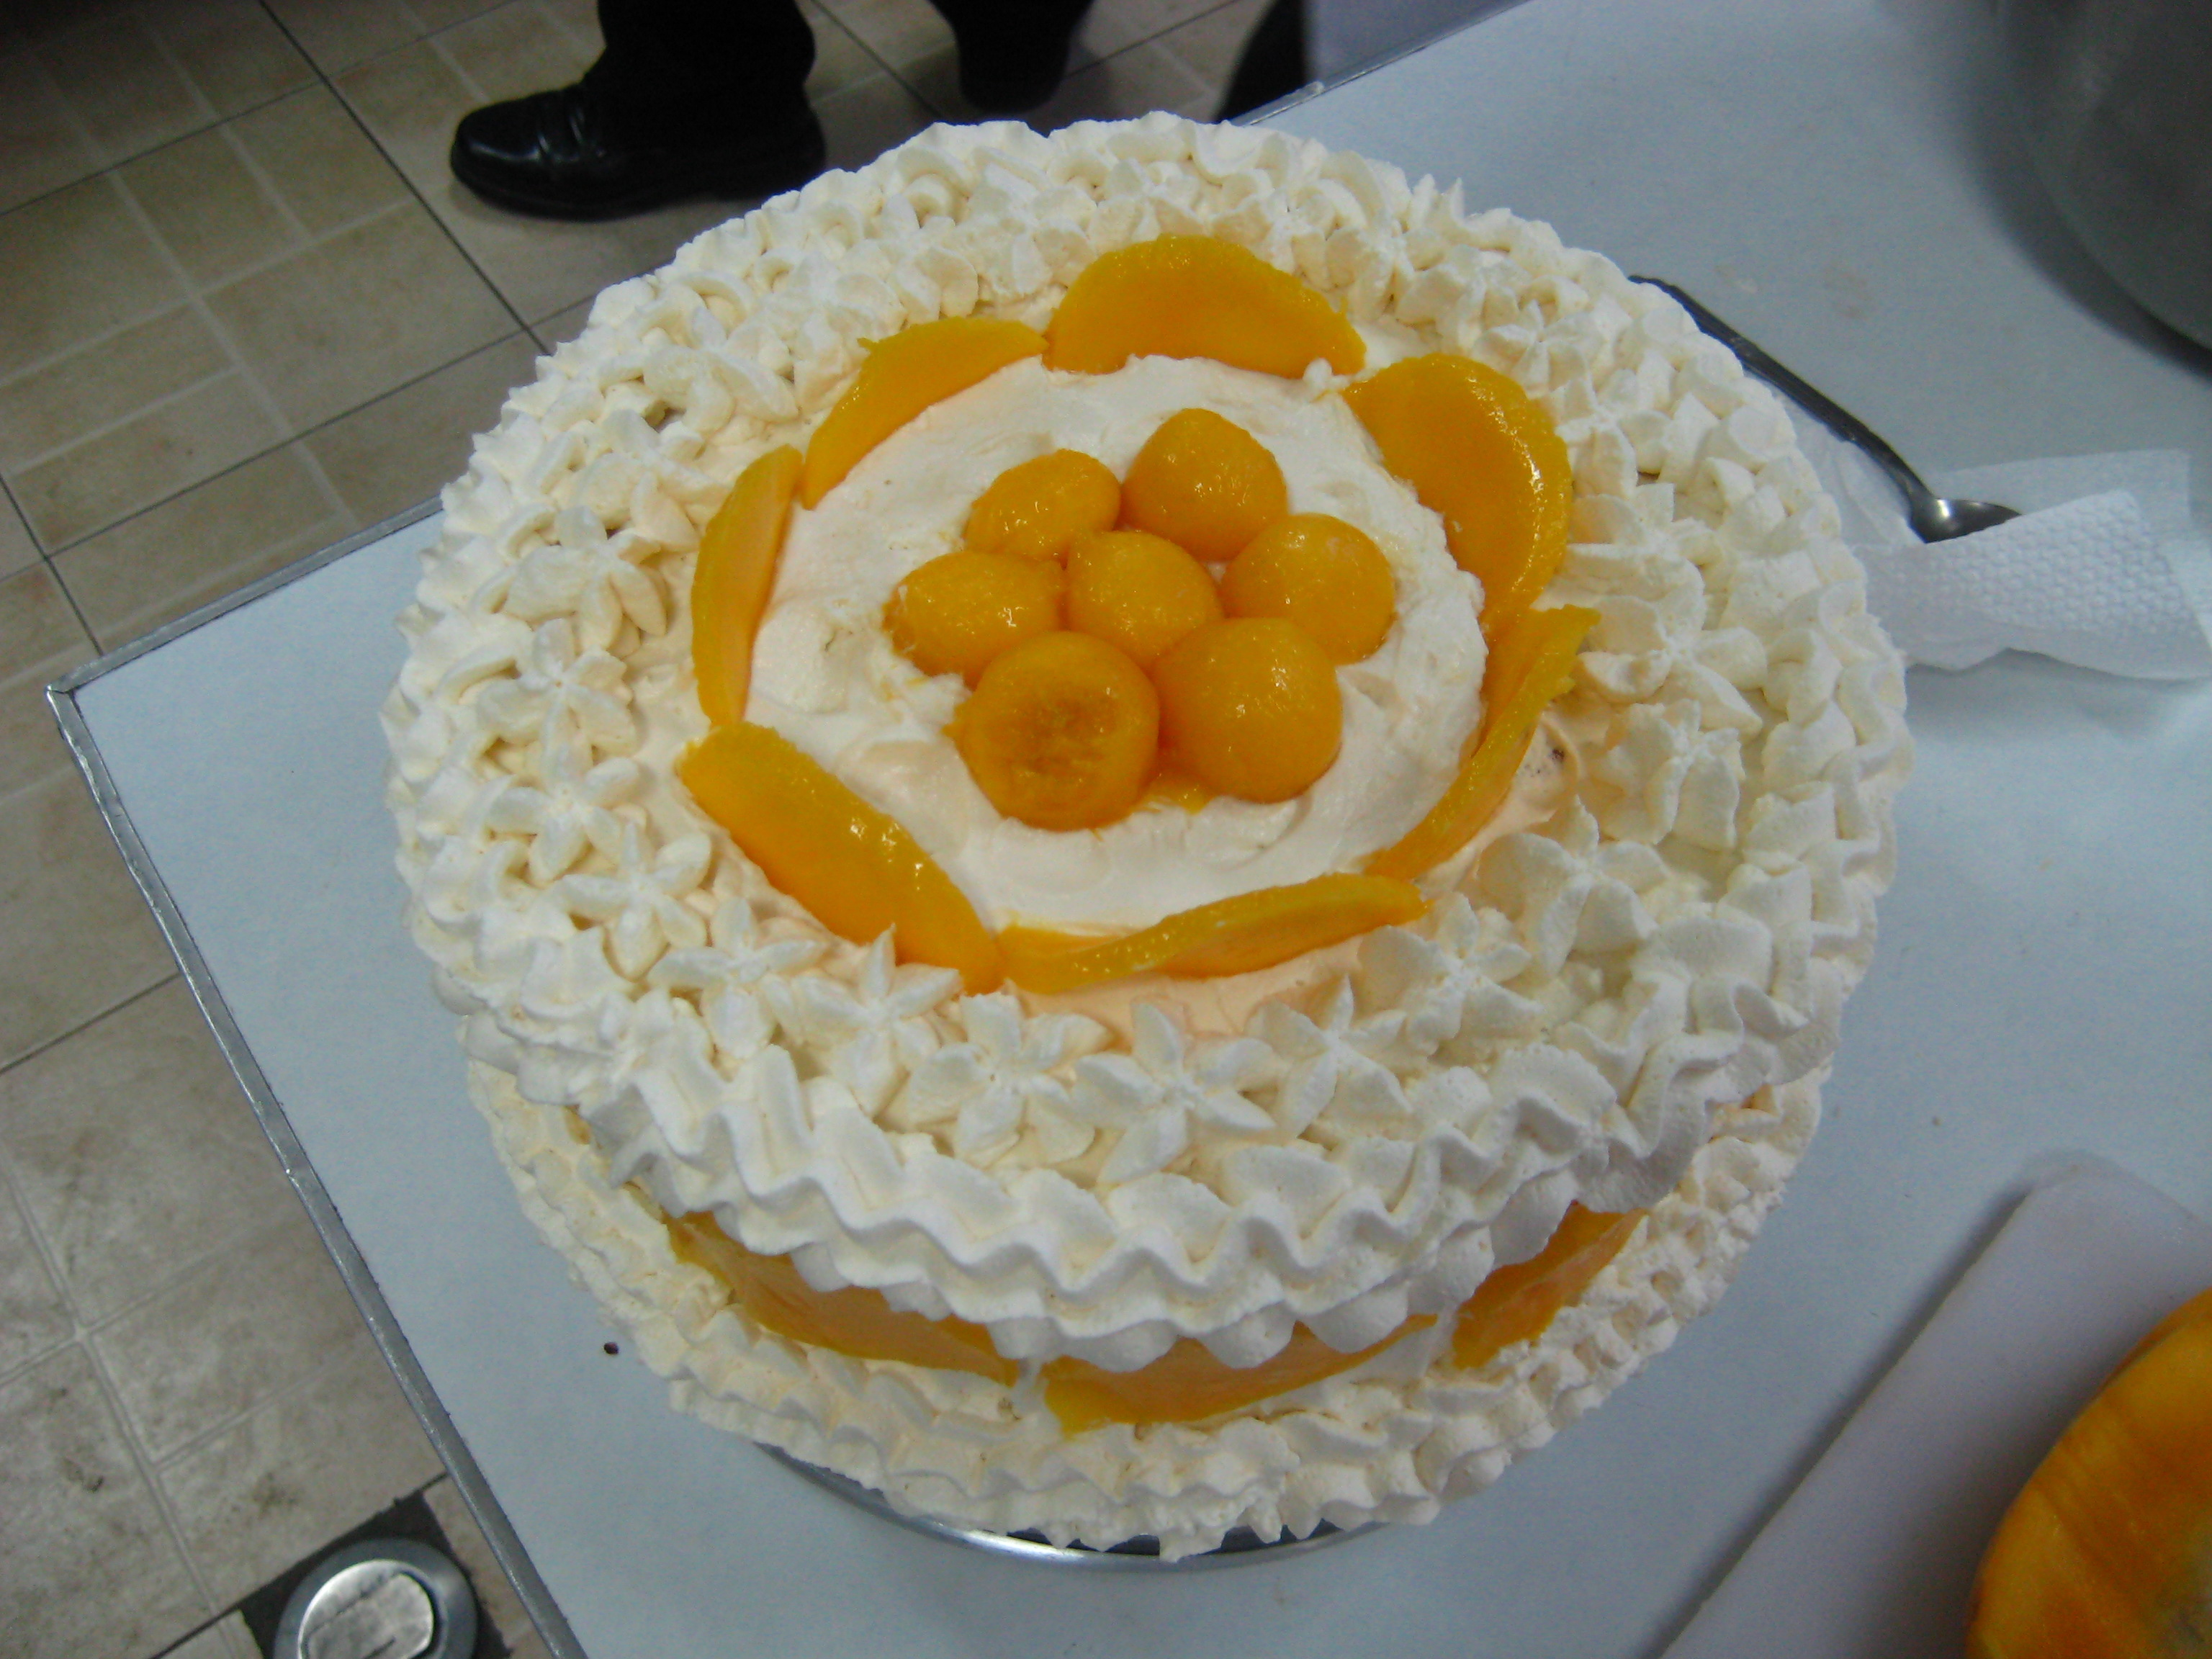 Sponge Cake with Whipped Cream Icing and Mangoes